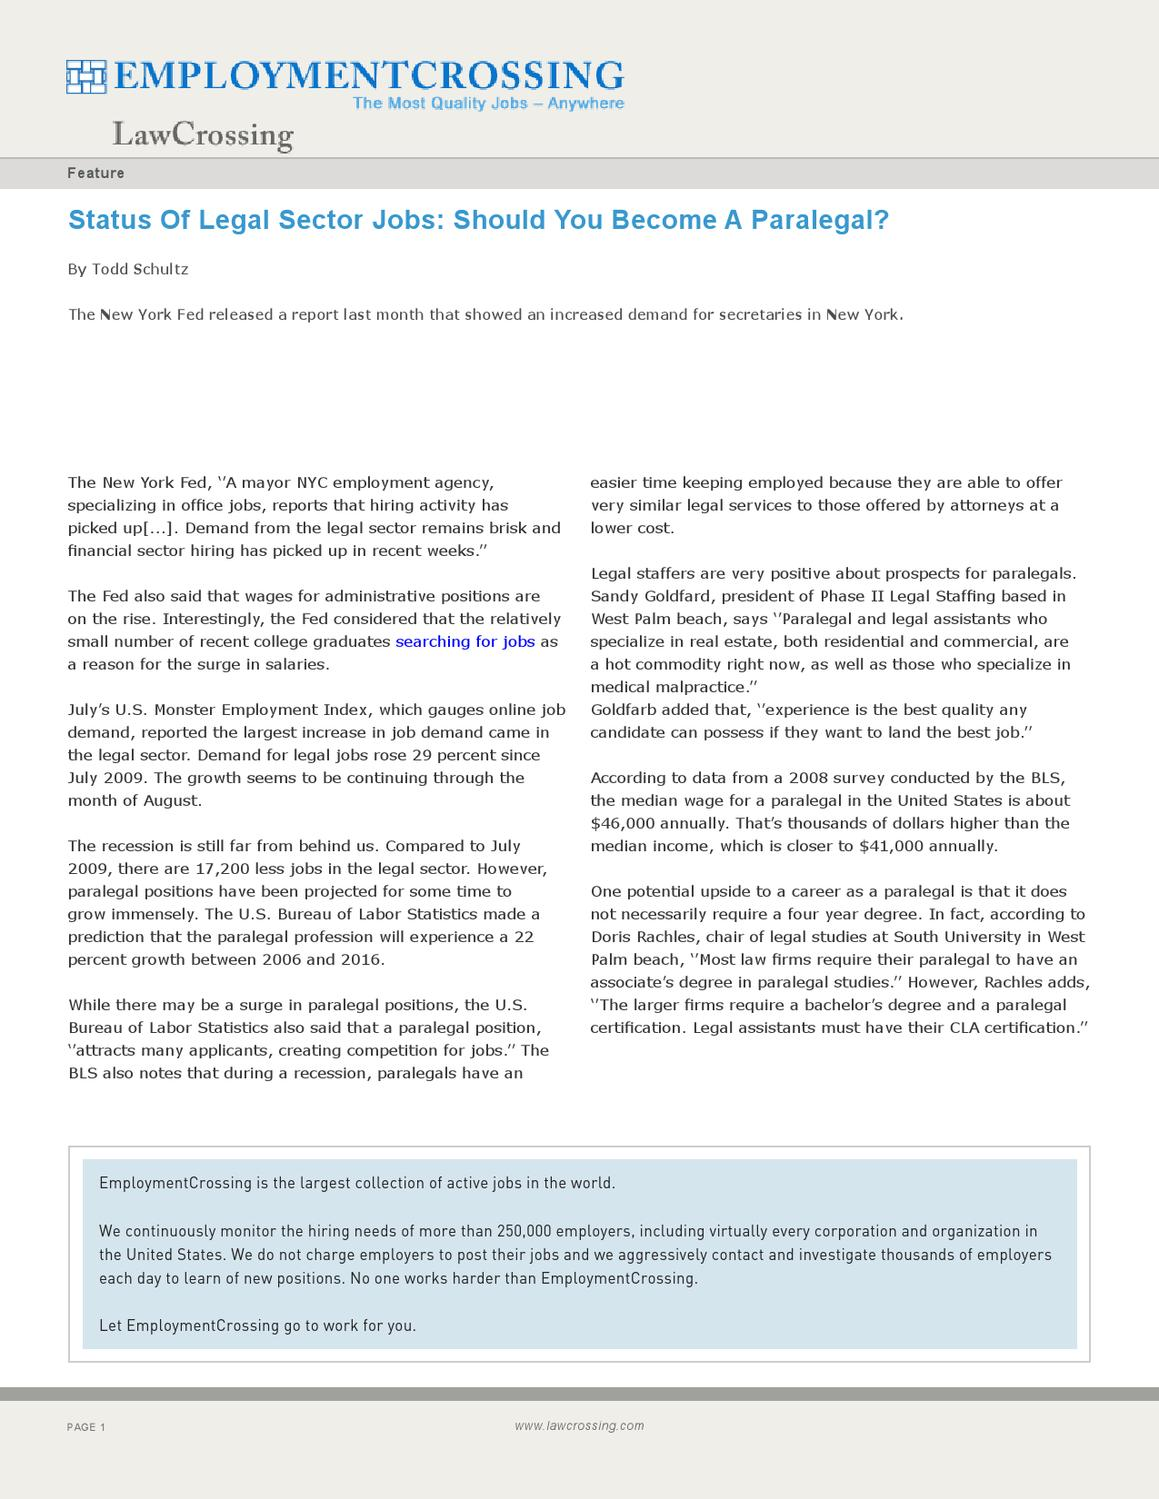 Status Of Legal Sector Jobs Should You Become A Paralegal By Roger